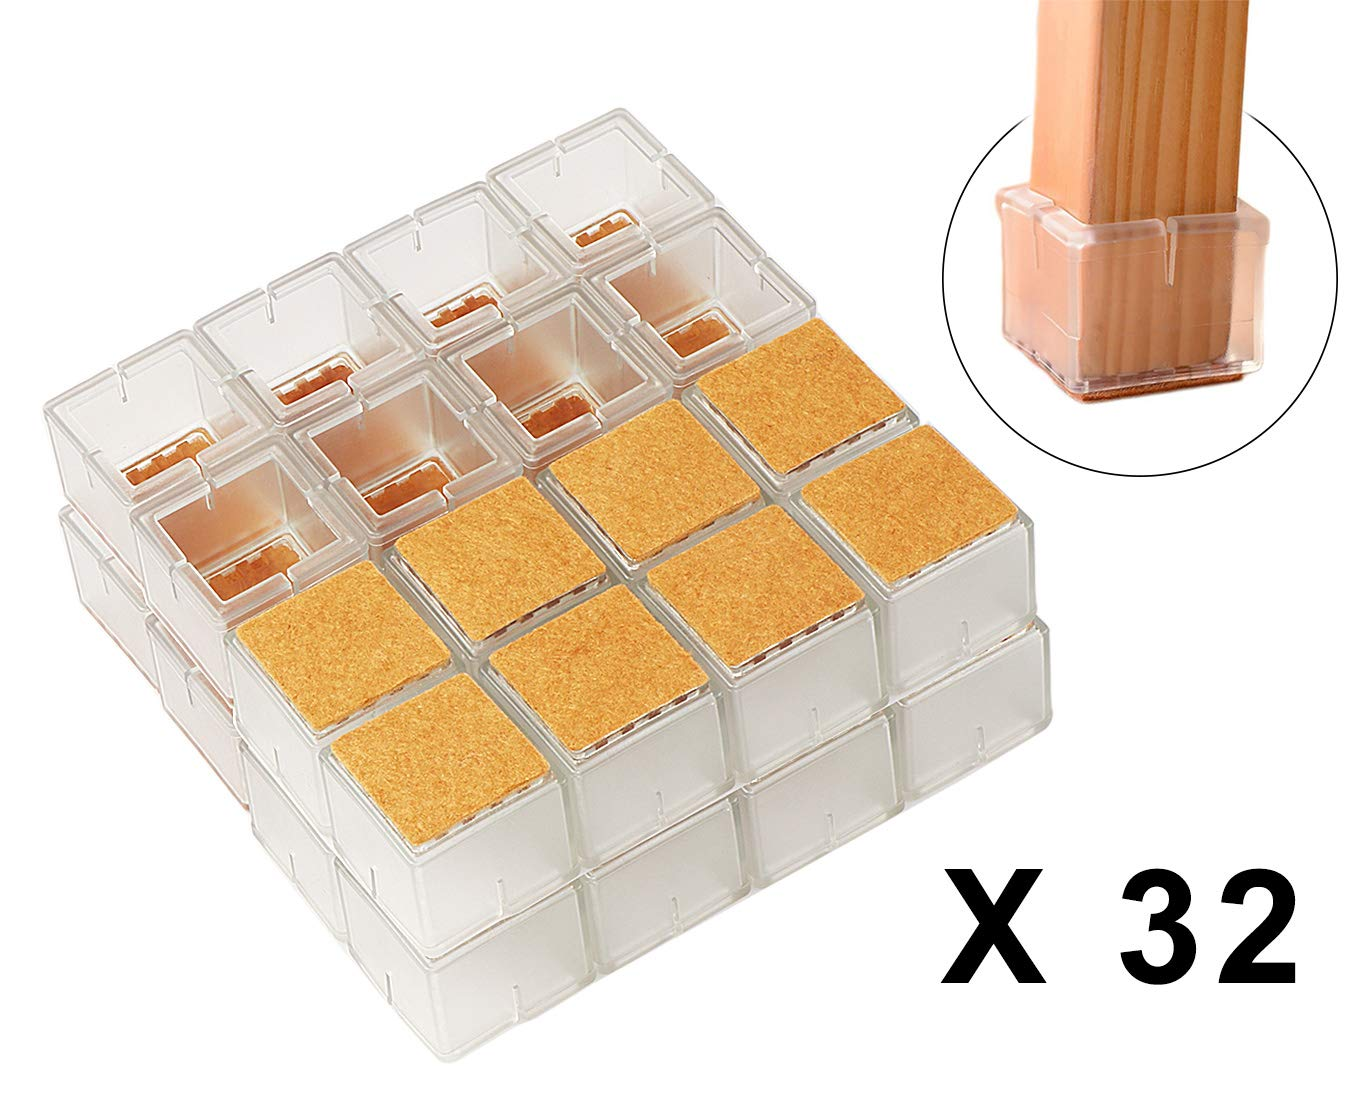 Chair Leg Hardwood Floor Protectors with Felt Mat Furniture Table Leg Glides Feet Caps Fit Square Length 1-1/4 to 1-3/8 Inch (32 Pack)